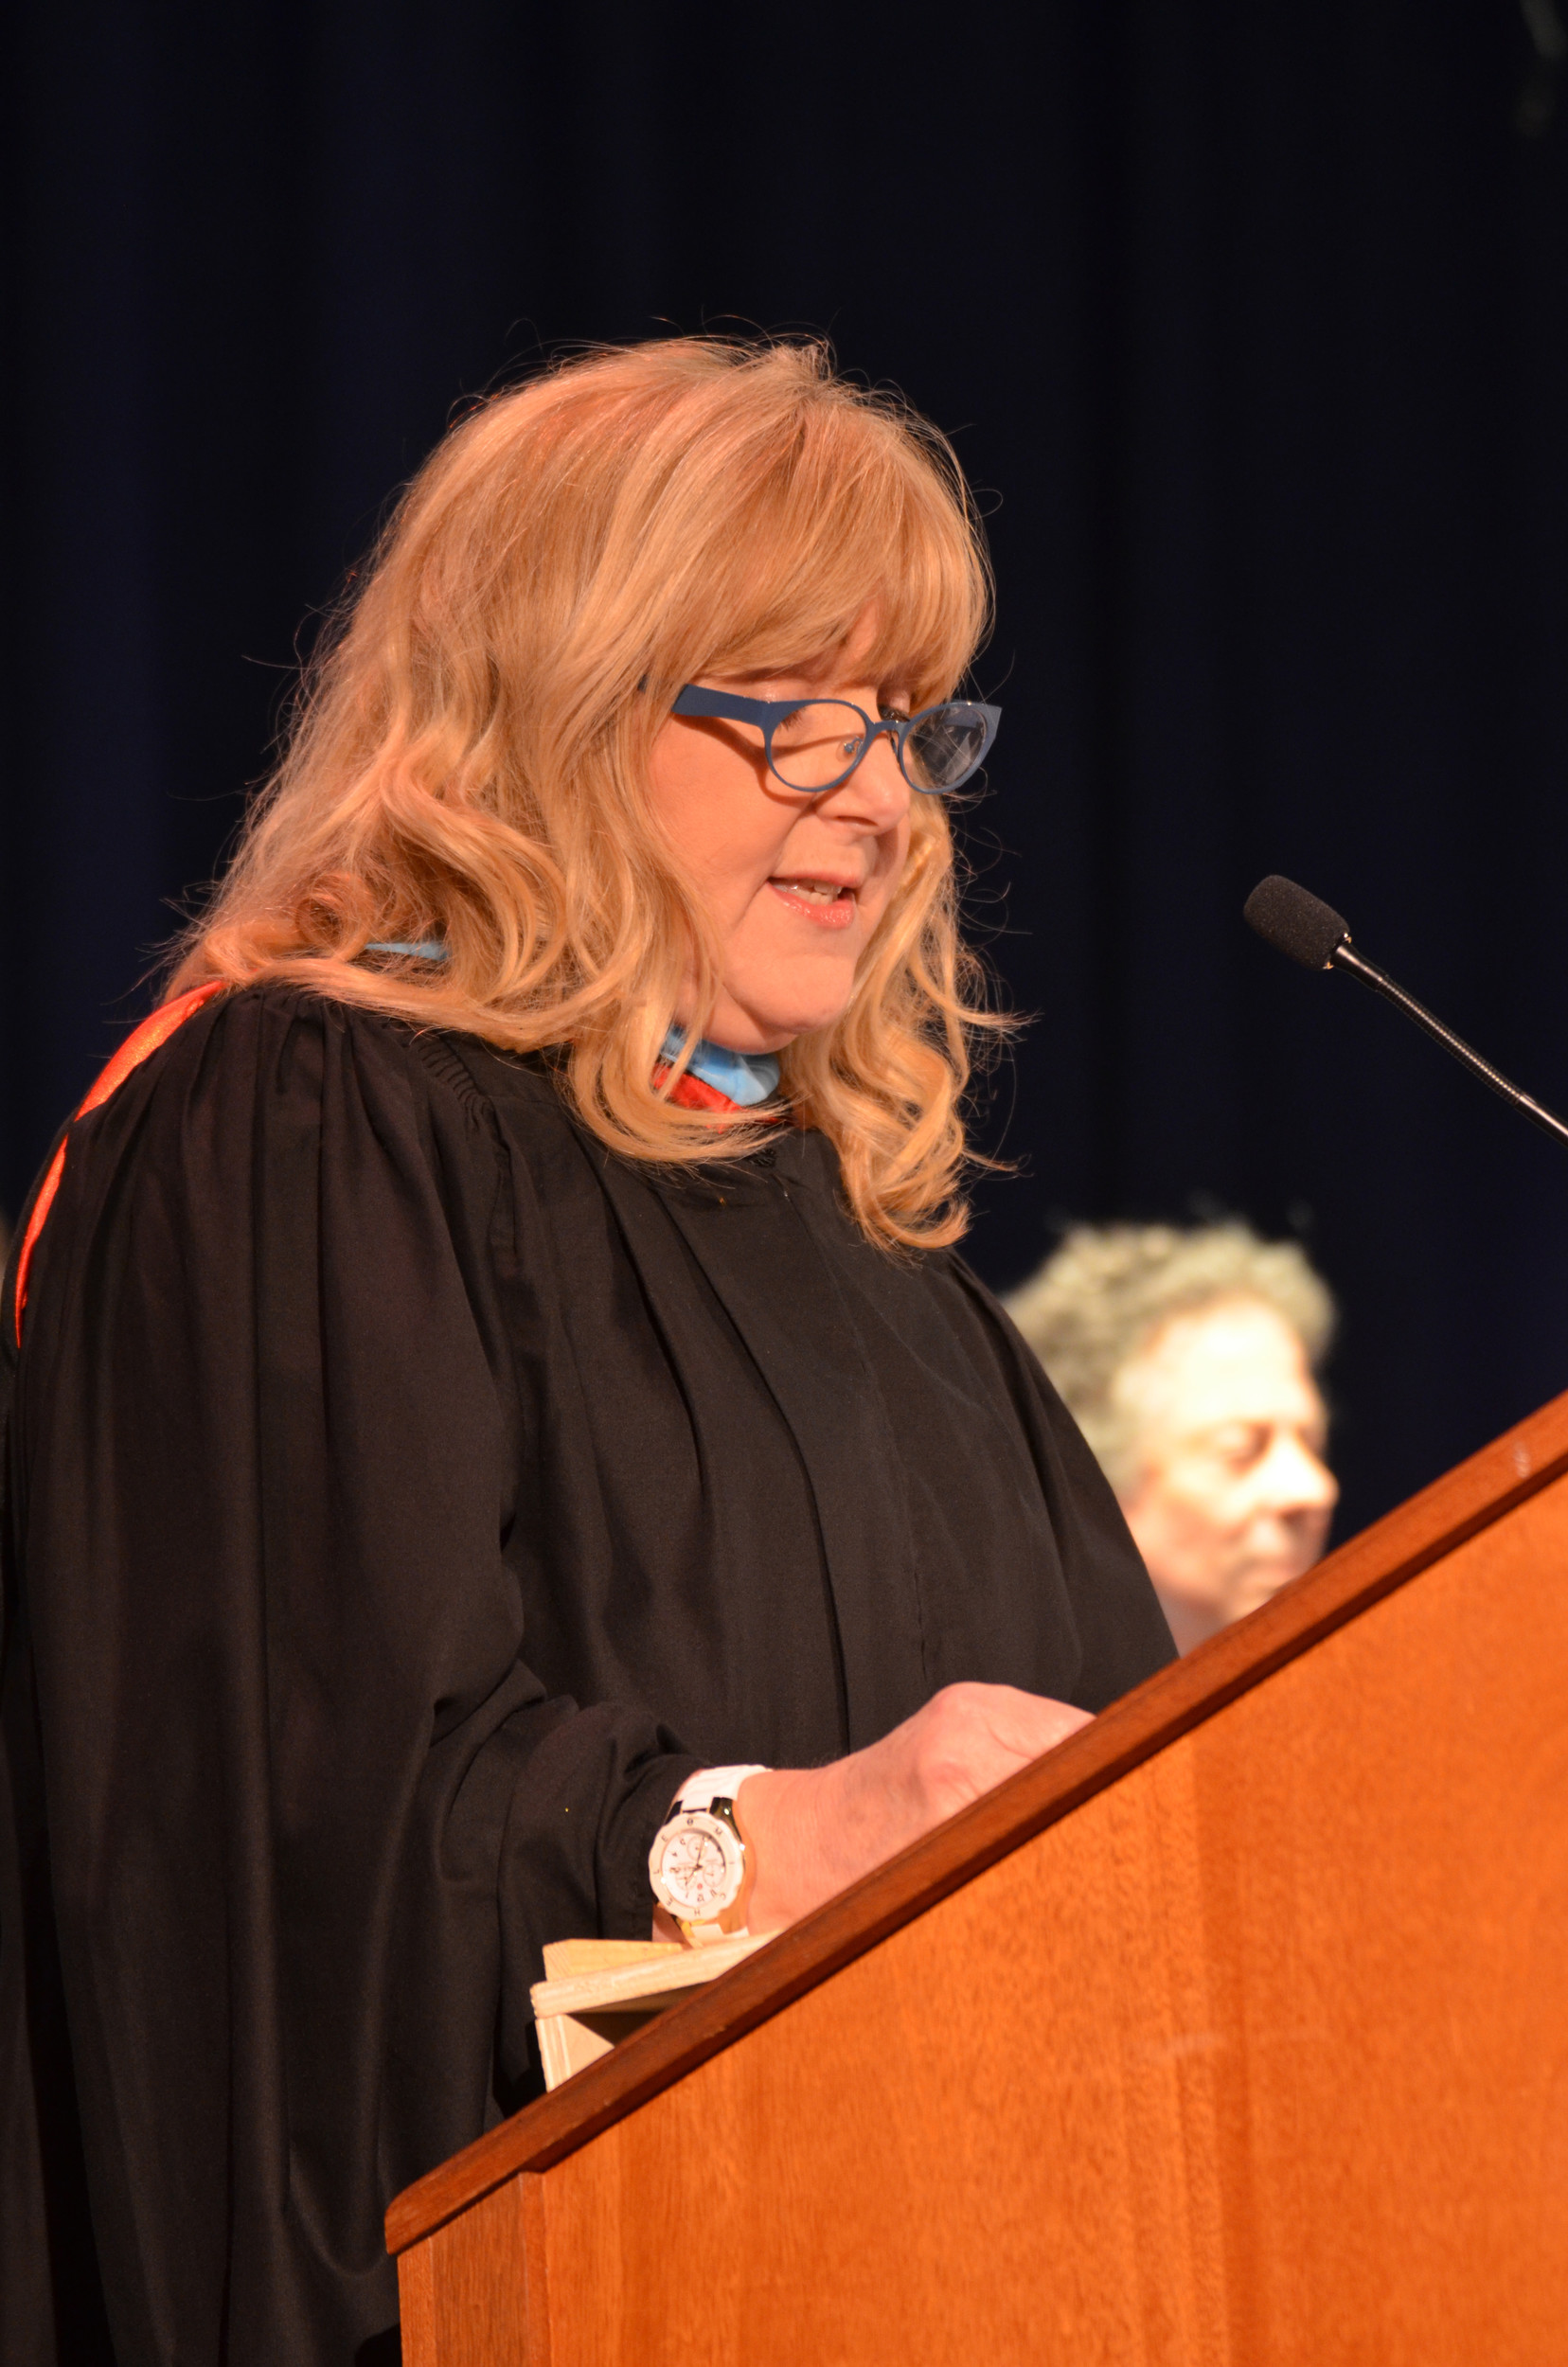 Superintendent of Schools Lisa J Ruiz addressed the graduating class.